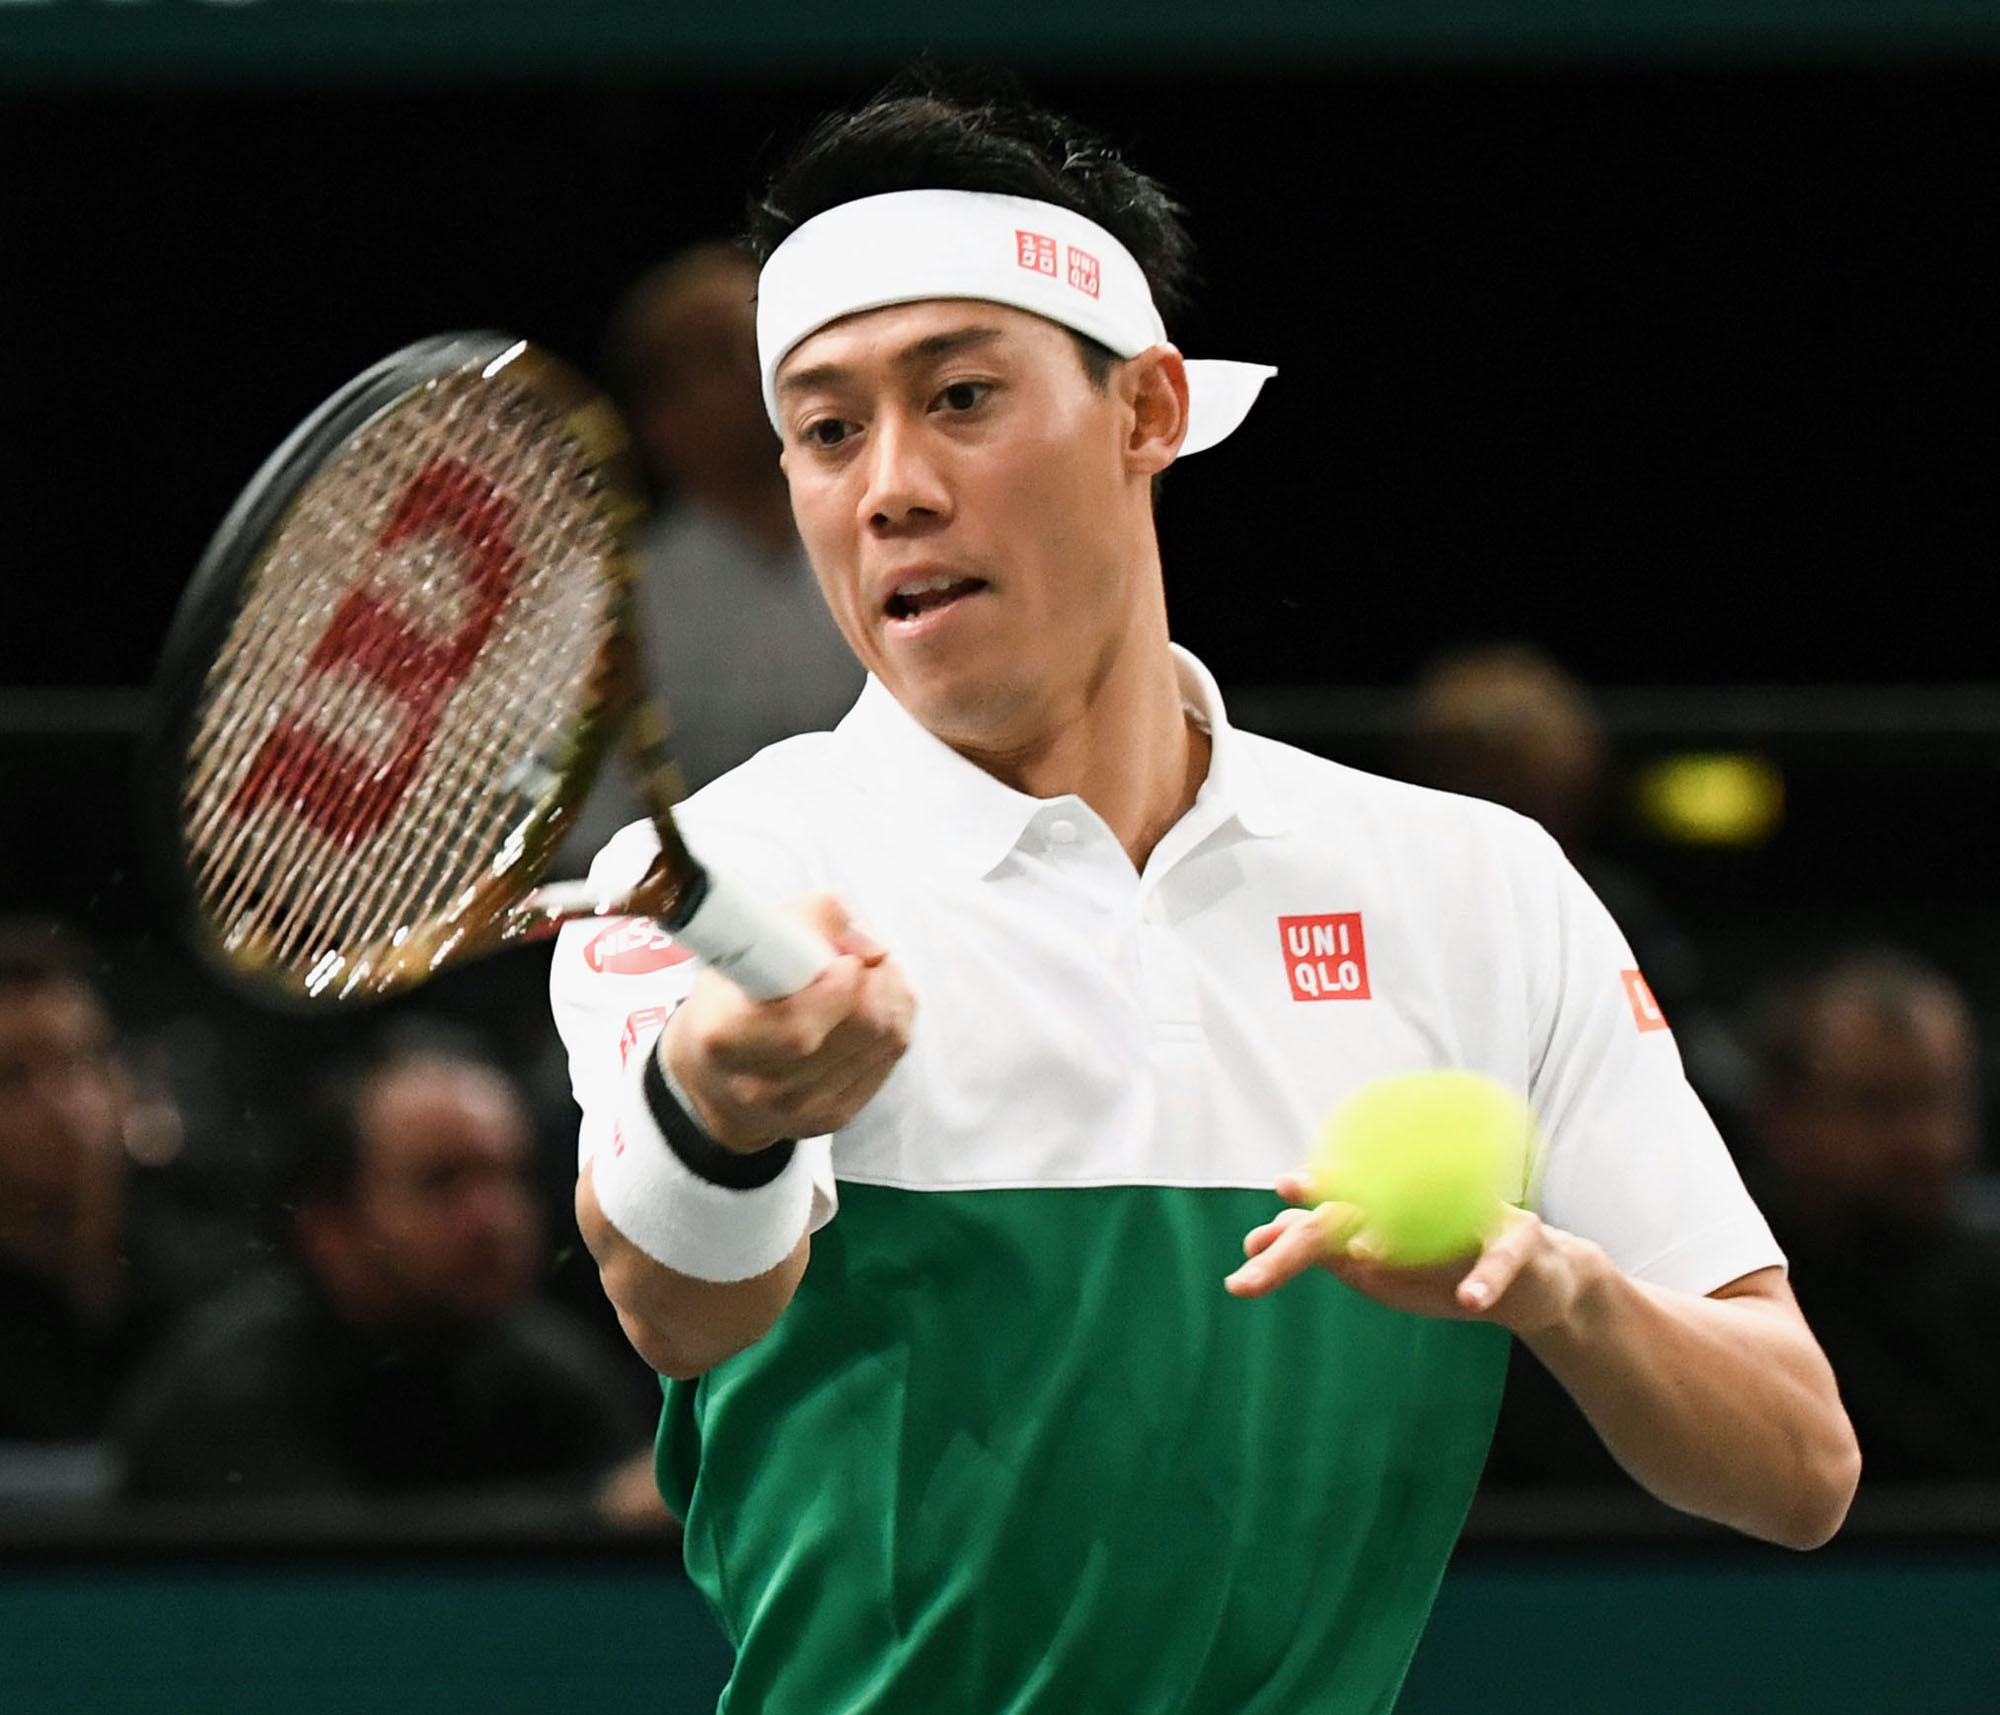 Kei Nishikori competes against Kevin Anderson during the Paris Masters on Nov. 1. Nishikori stormed back into the top 10 of the ATP rankings after suffering a wrist injury in 2017. | KYODO